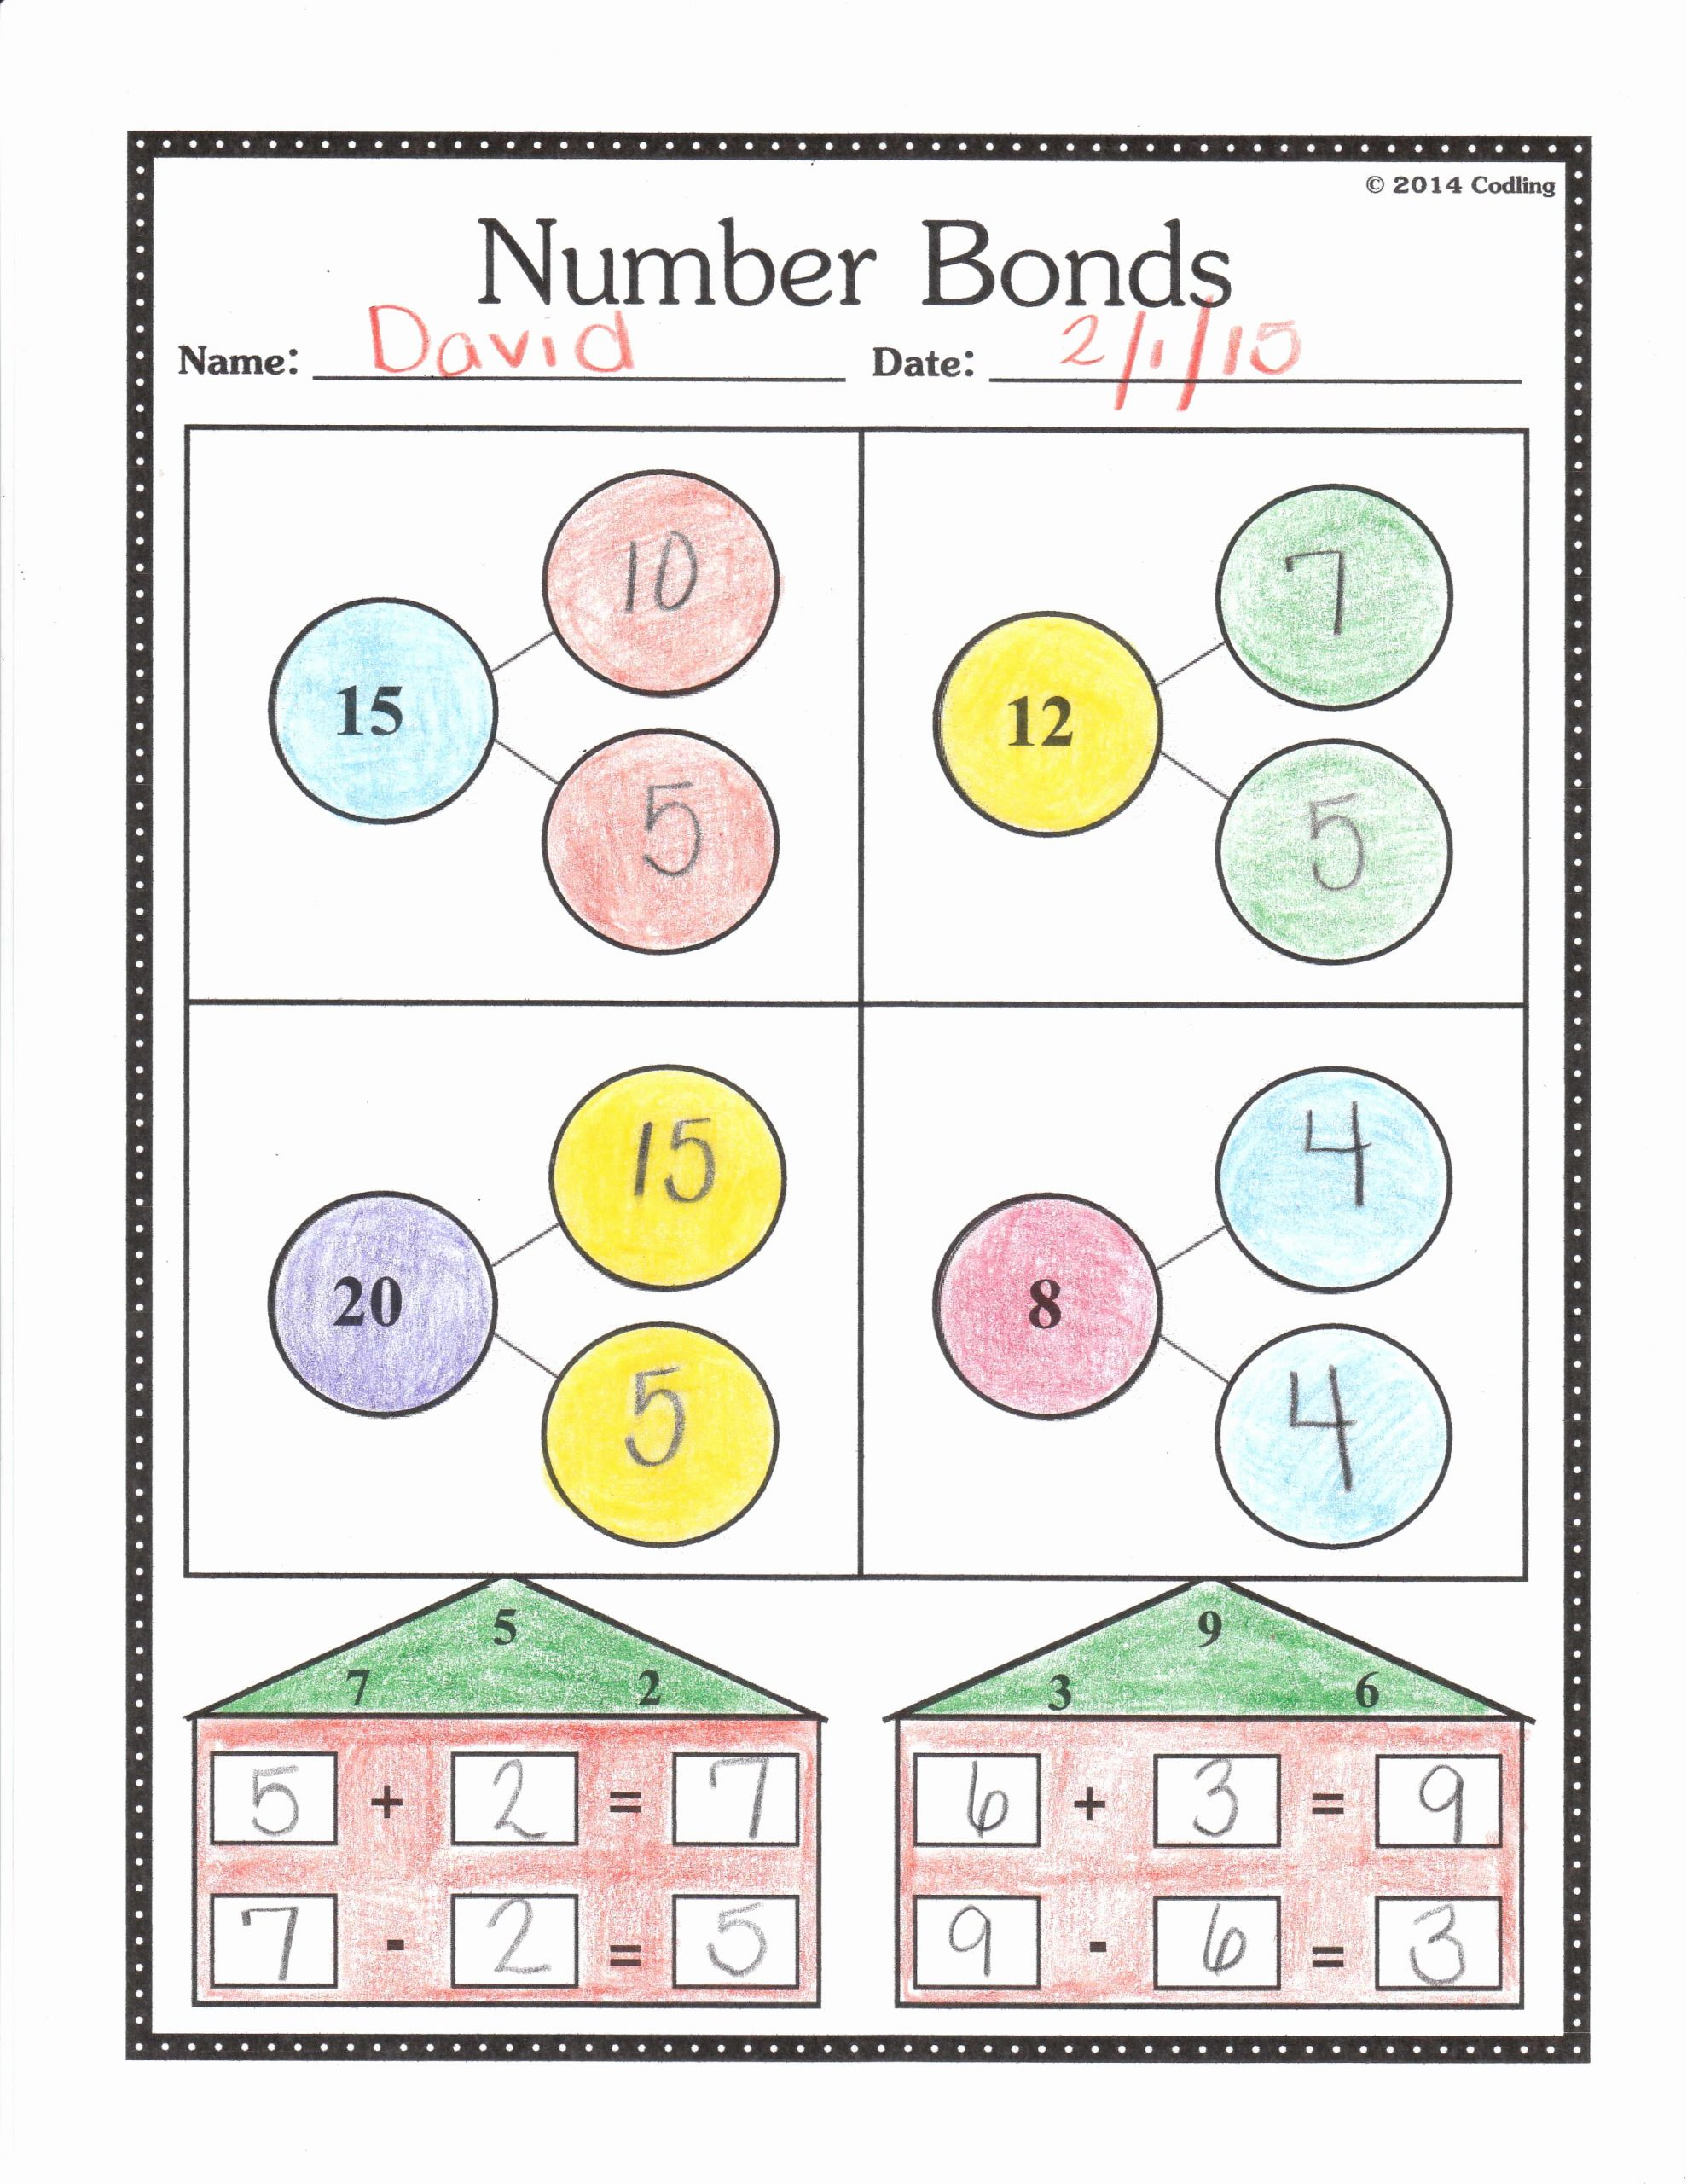 Number Bonds Worksheets 1st Grade Fresh Number Bonds Worksheet First Grade